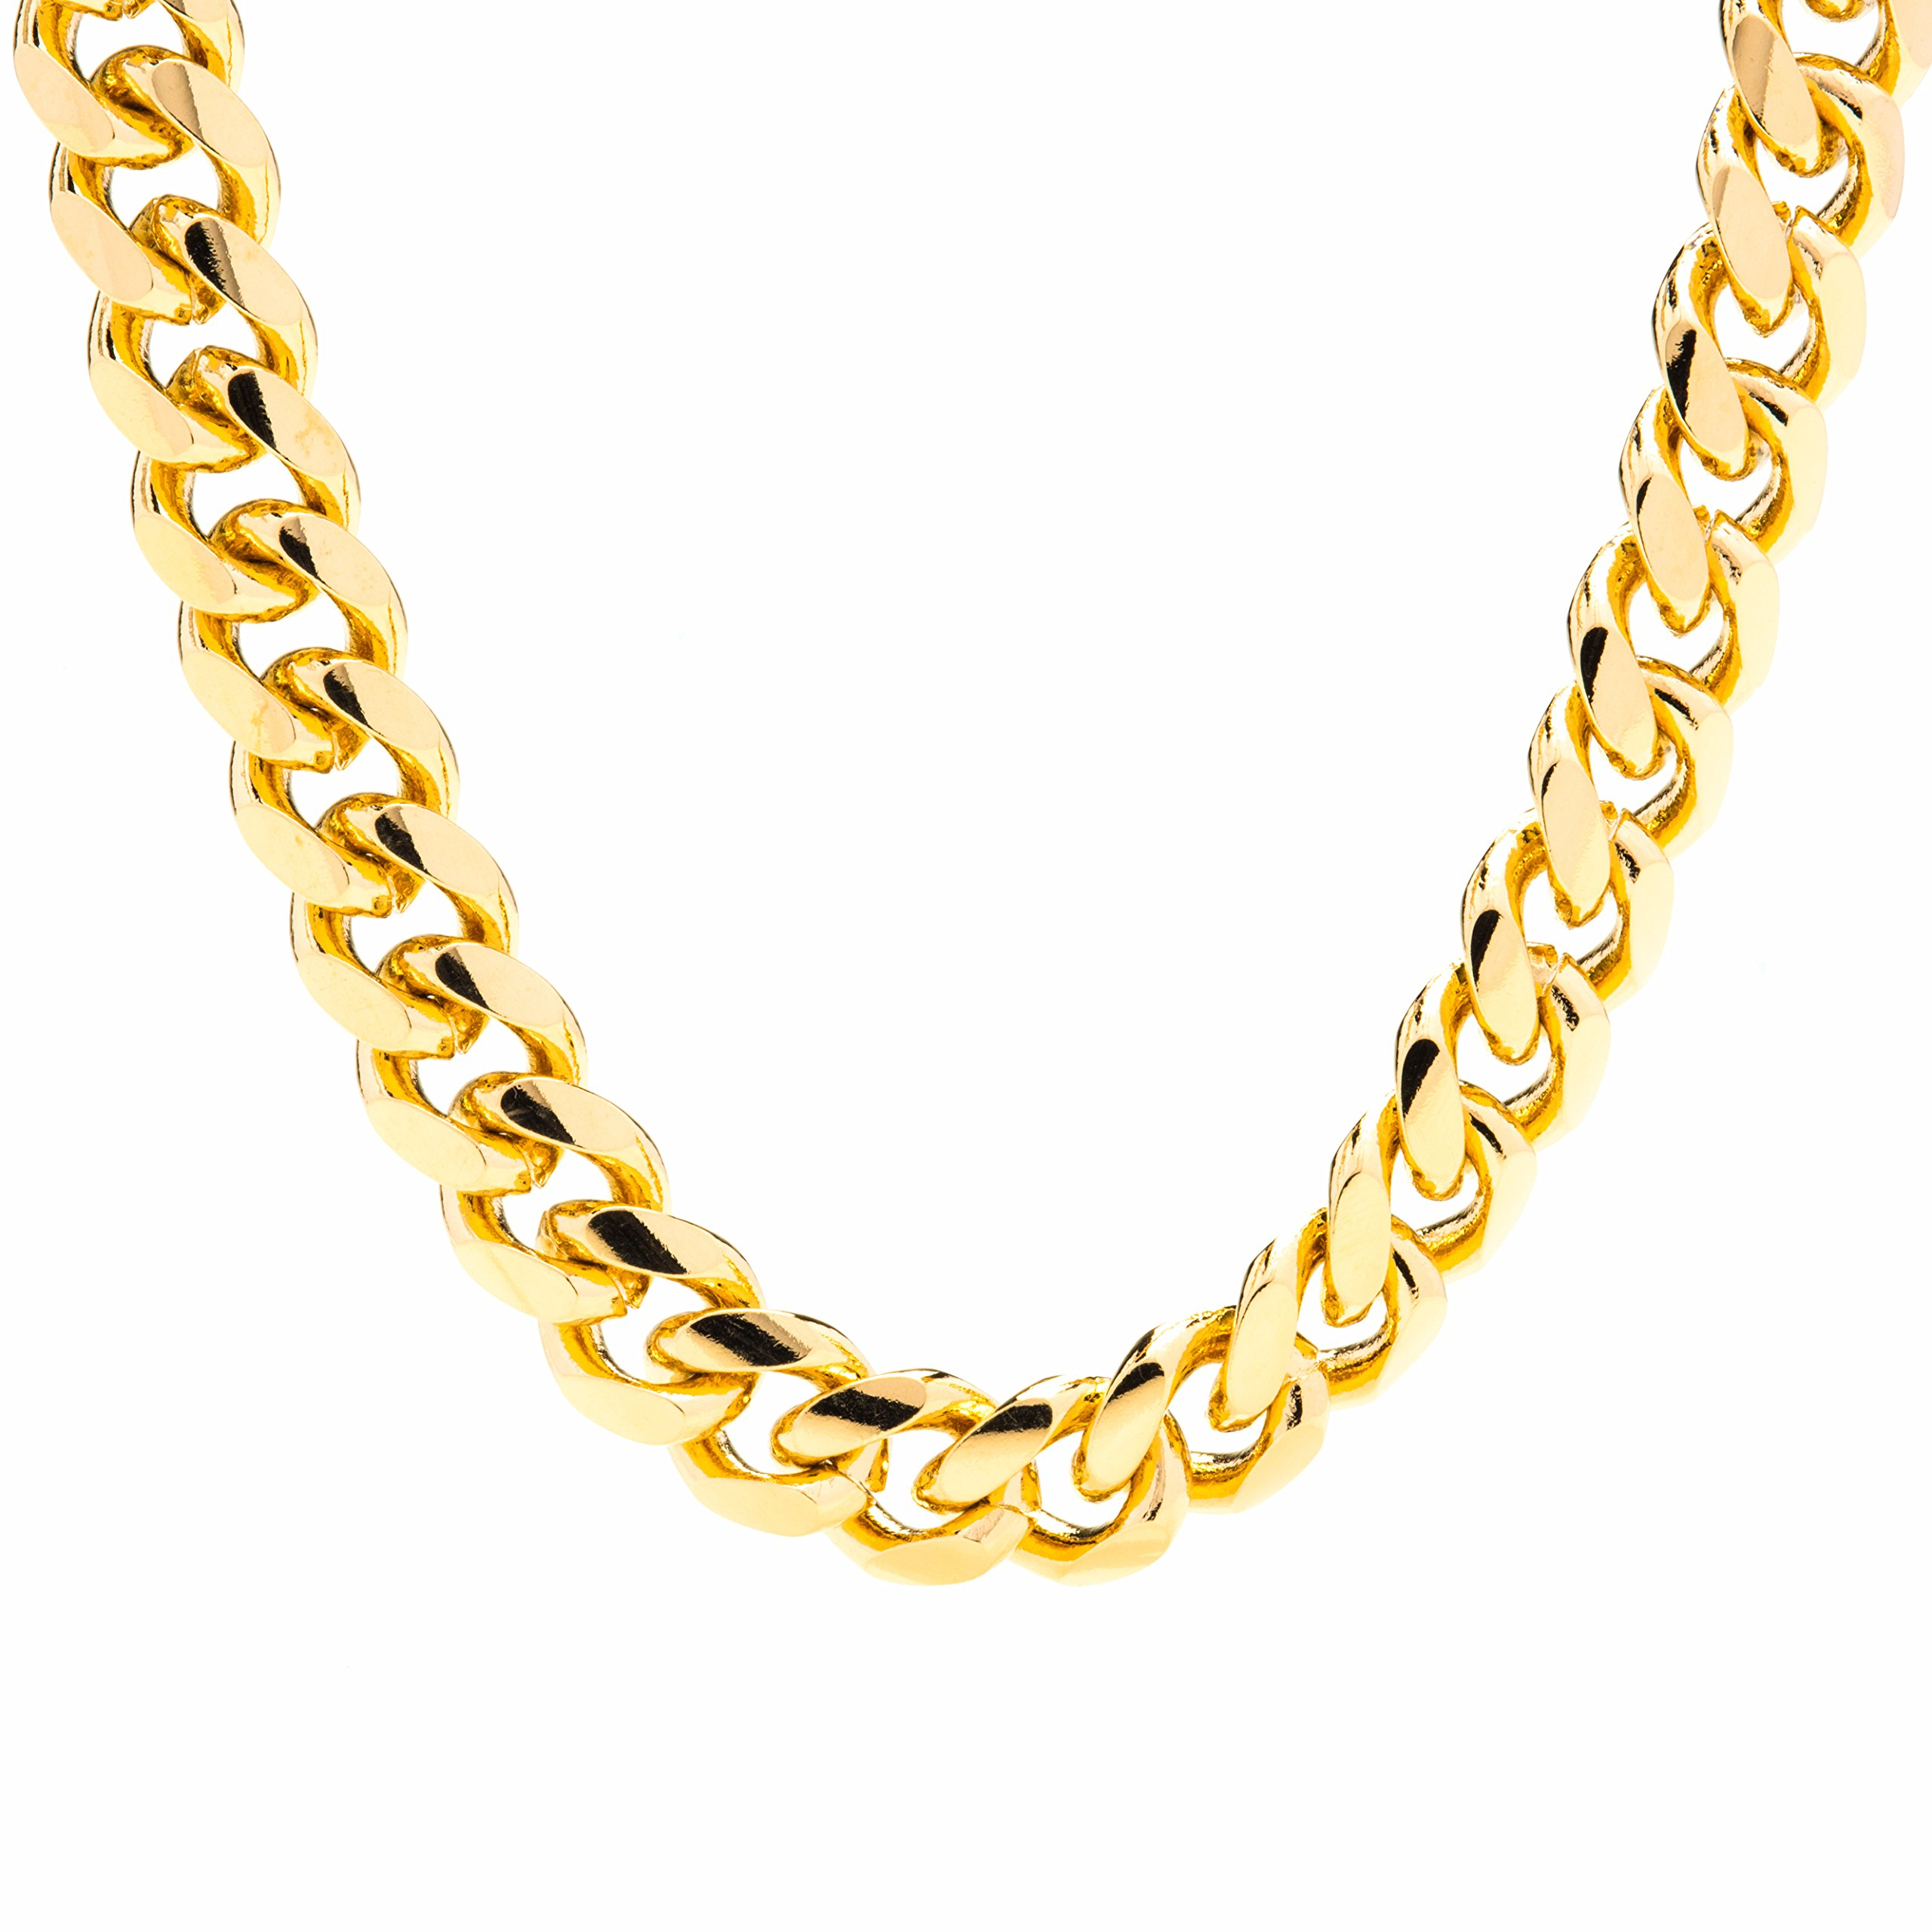 Gold Cuban Link Chain 11MM, Round, 24K Overlay Premium Fashion Jewelry Necklaces, Resists Tarnishing, GUARANTEED FOR LIFE, 24 Inches